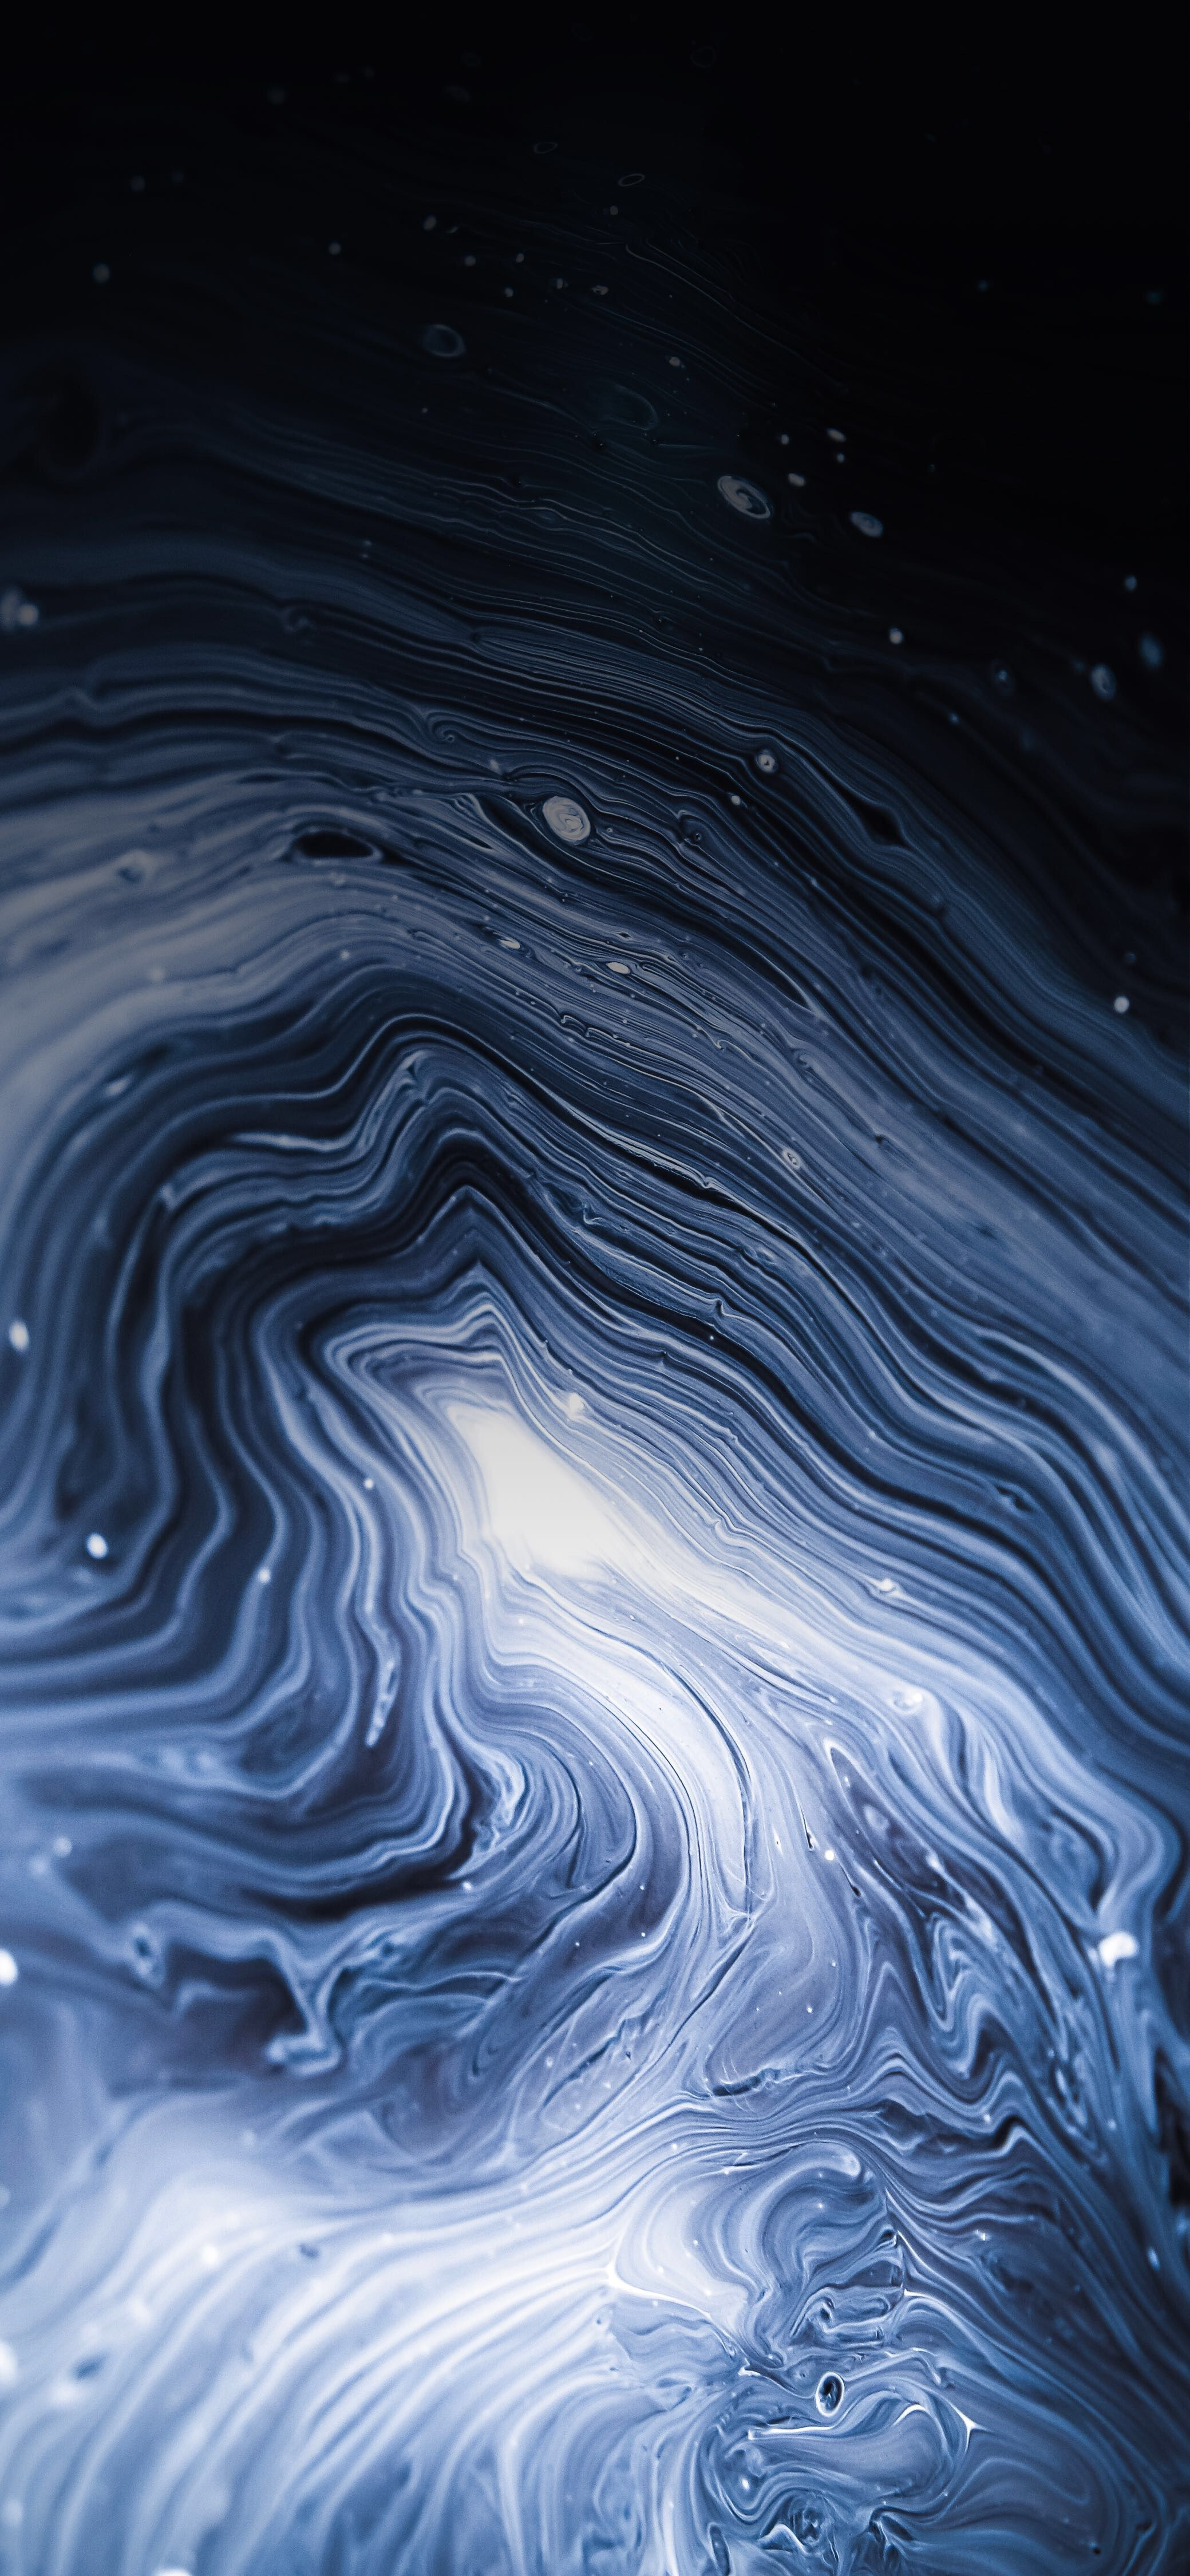 Liquid Texture Pattern Looks Like Floating Galaxy Acrylic Paint In The Water Abstract Painting Wallpaper Art Wallpaper